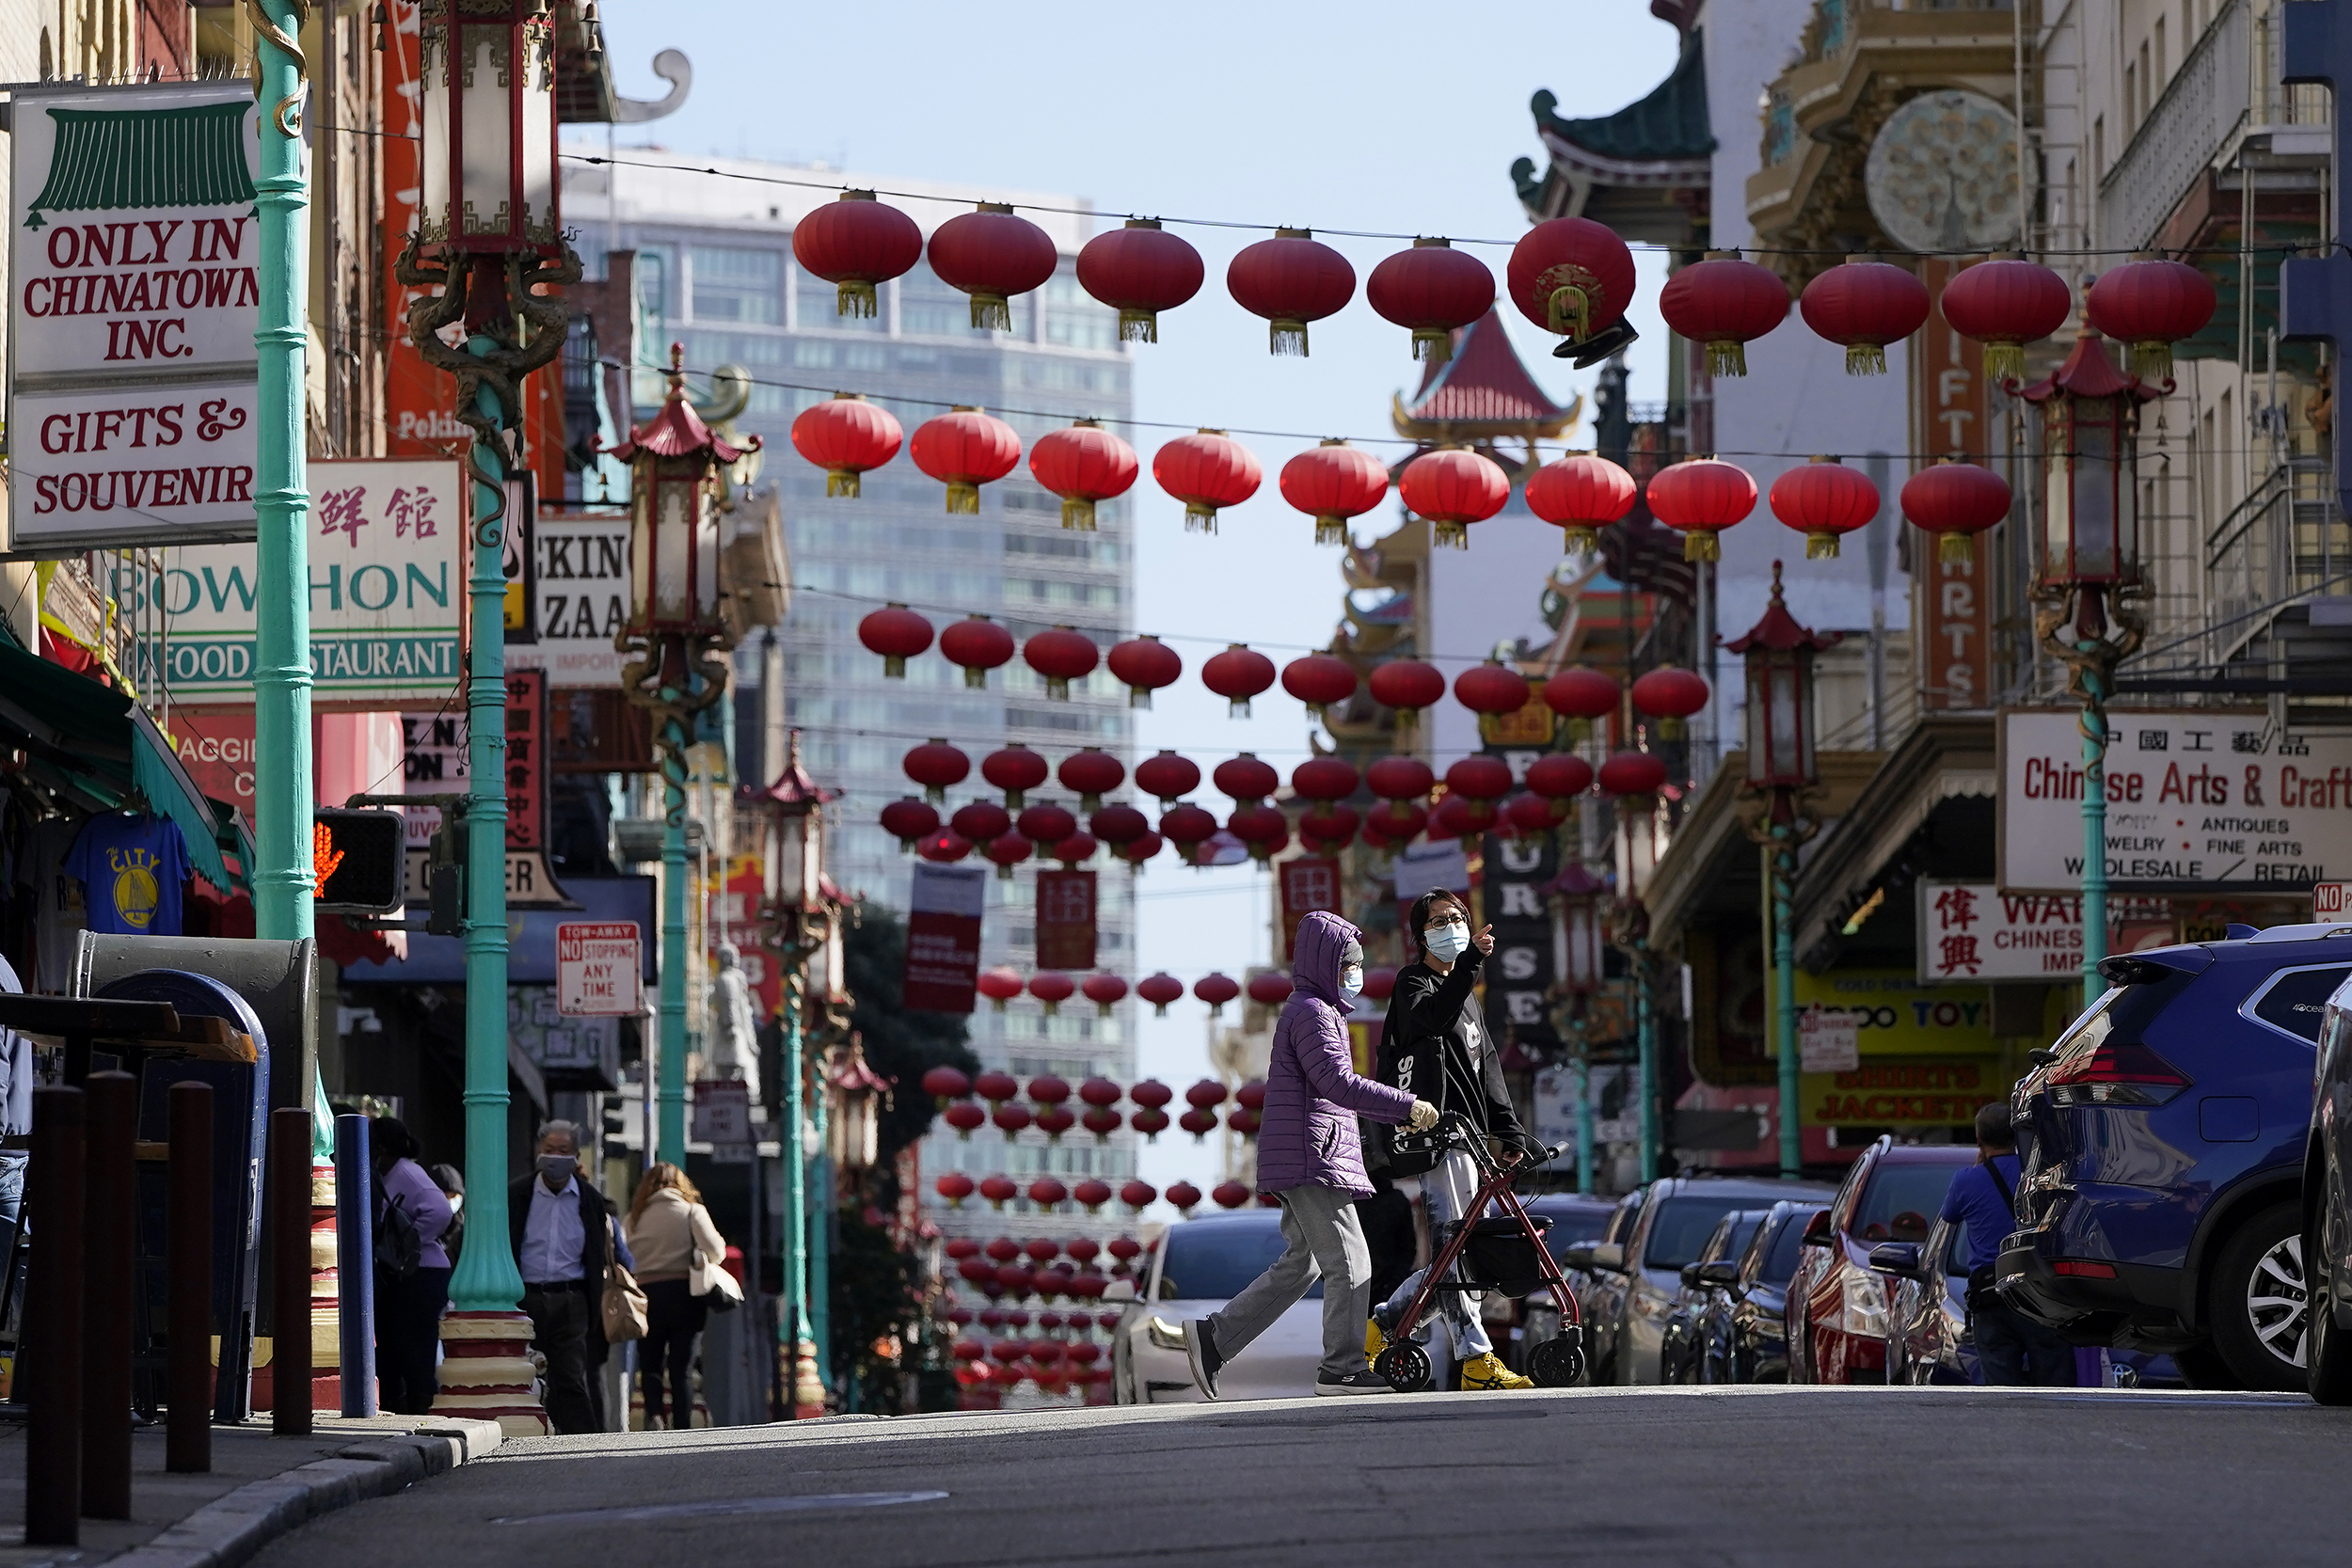 Picket lines are forming in Chinatowns across America. Workers seek millions in damages.